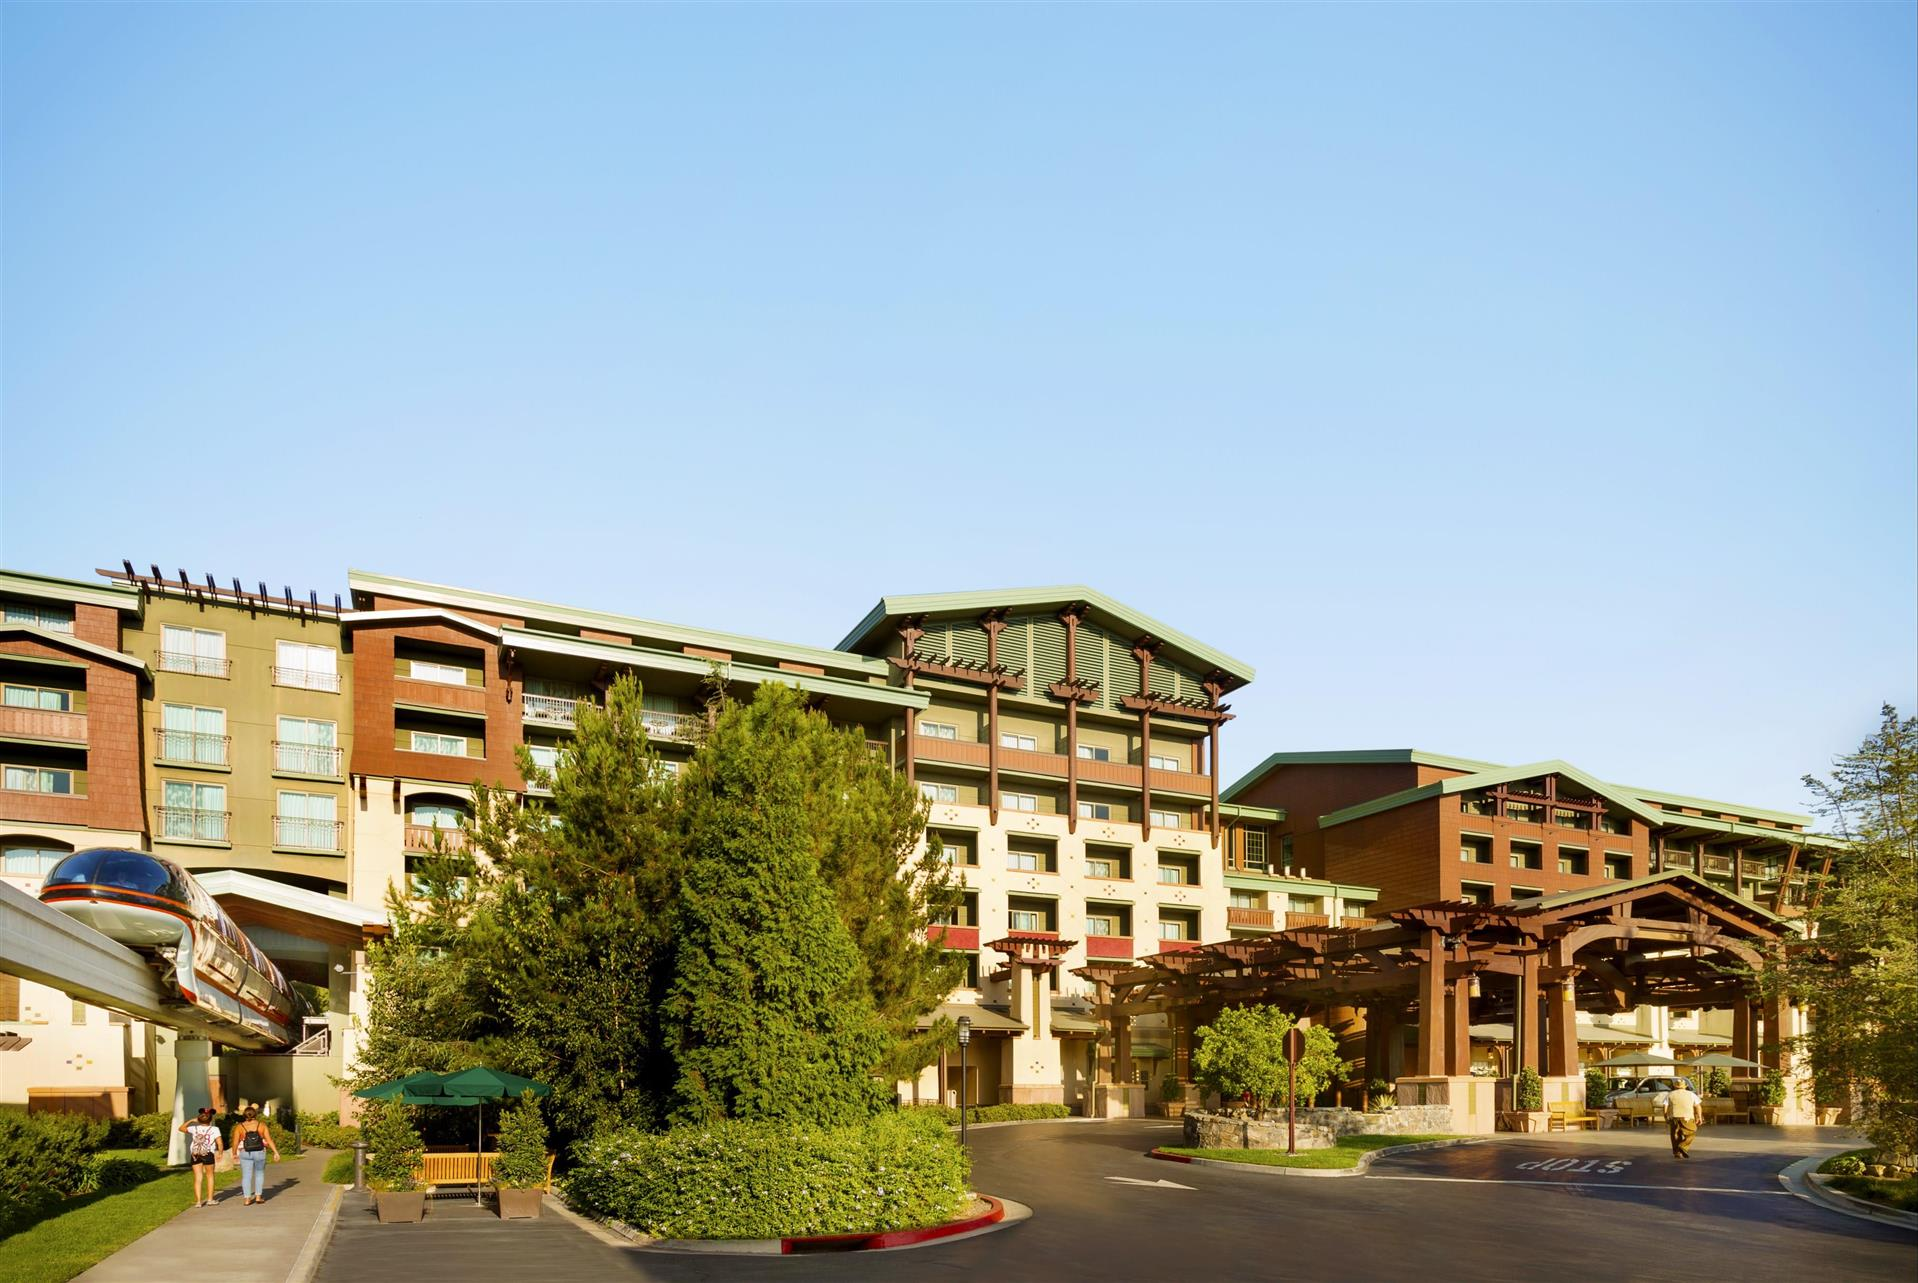 Meetings and events at Disney's Grand Californian Hotel